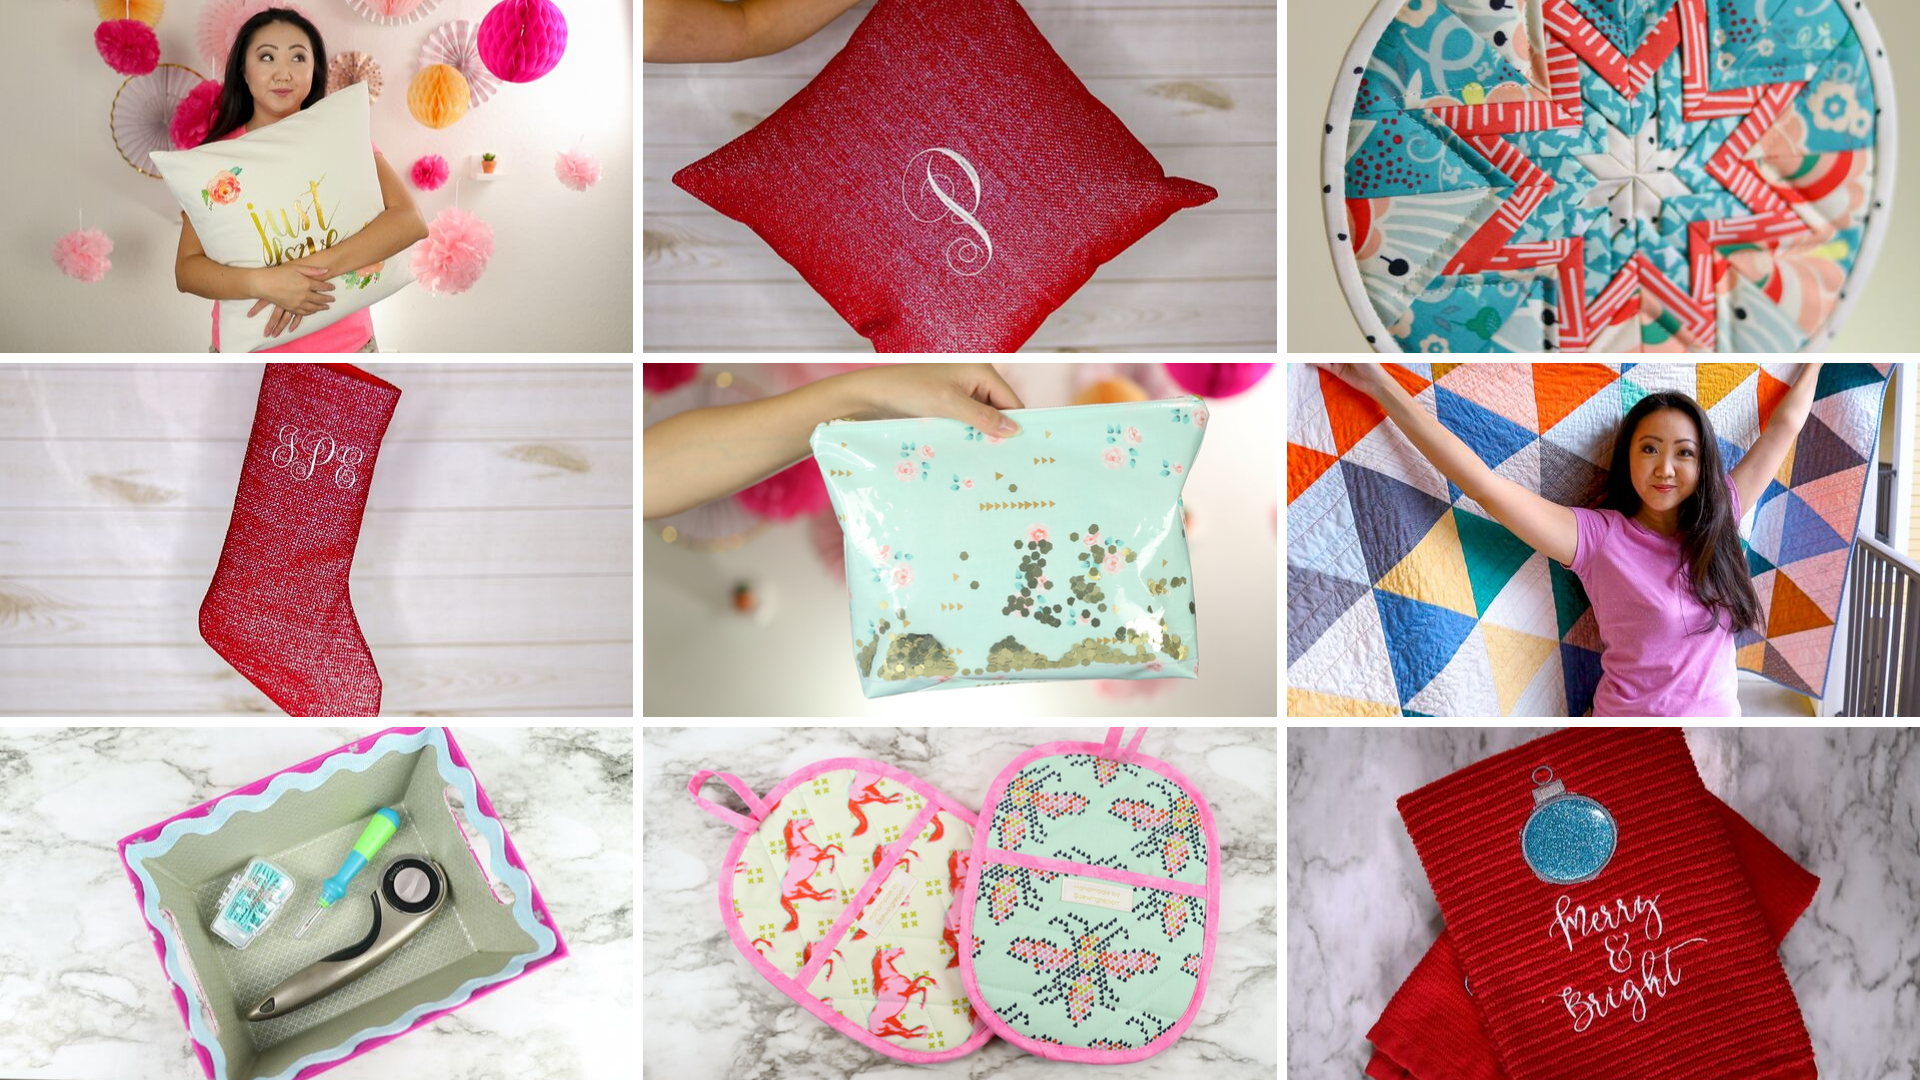 Christmas Gift Ideas 2019 Diy.Diy Christmas Gift Ideas 10 Sewing Quilting Embroidery